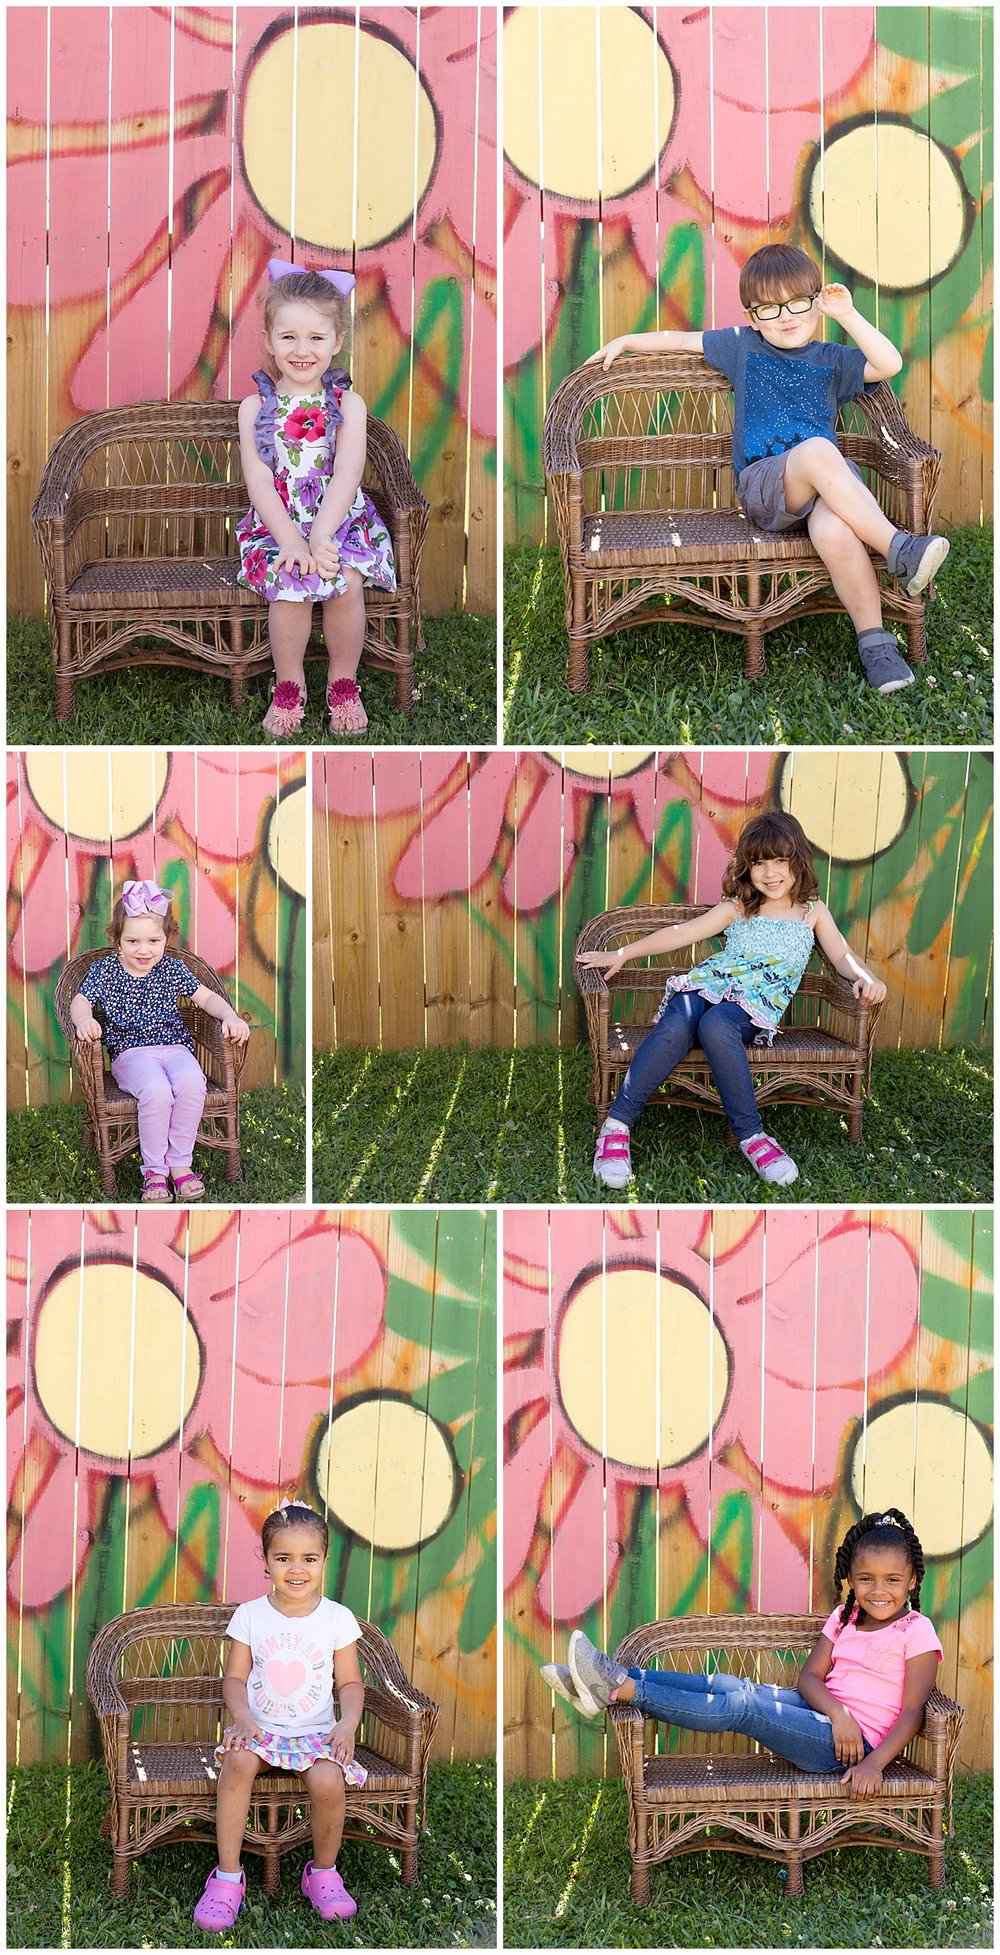 preschool portraits with colorful wall and wicker bench - Ocean Springs school pictures